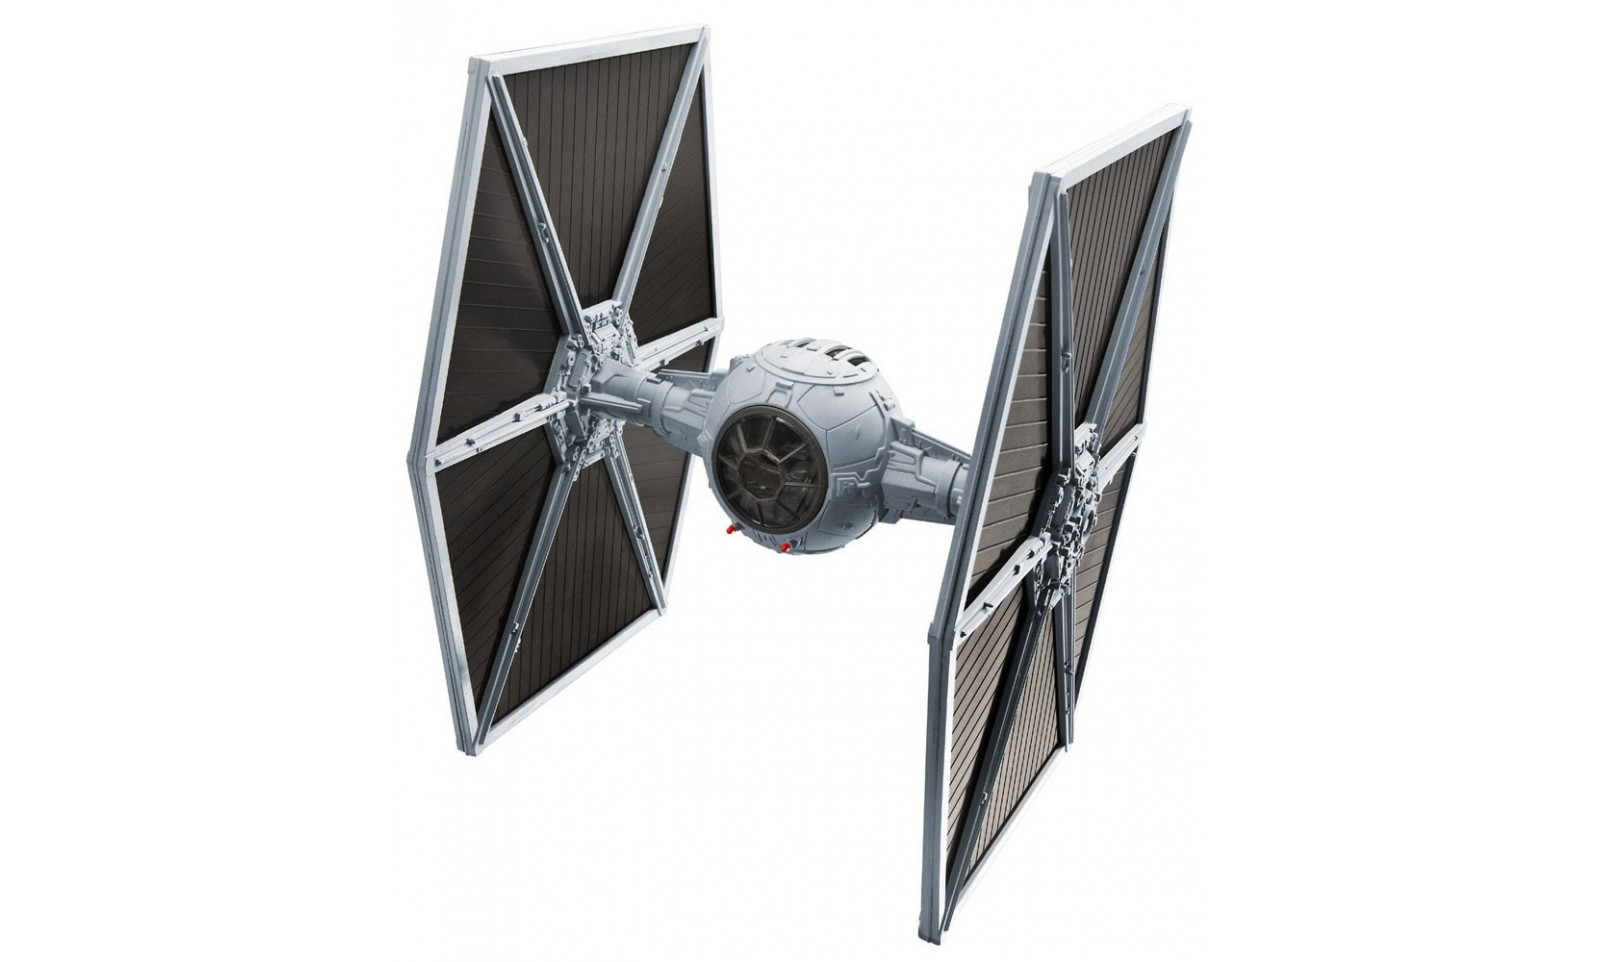 Star wars maquette vaisseau tie fighter 16 cm r plique film cin ma - Vaisseau star wars anakin ...